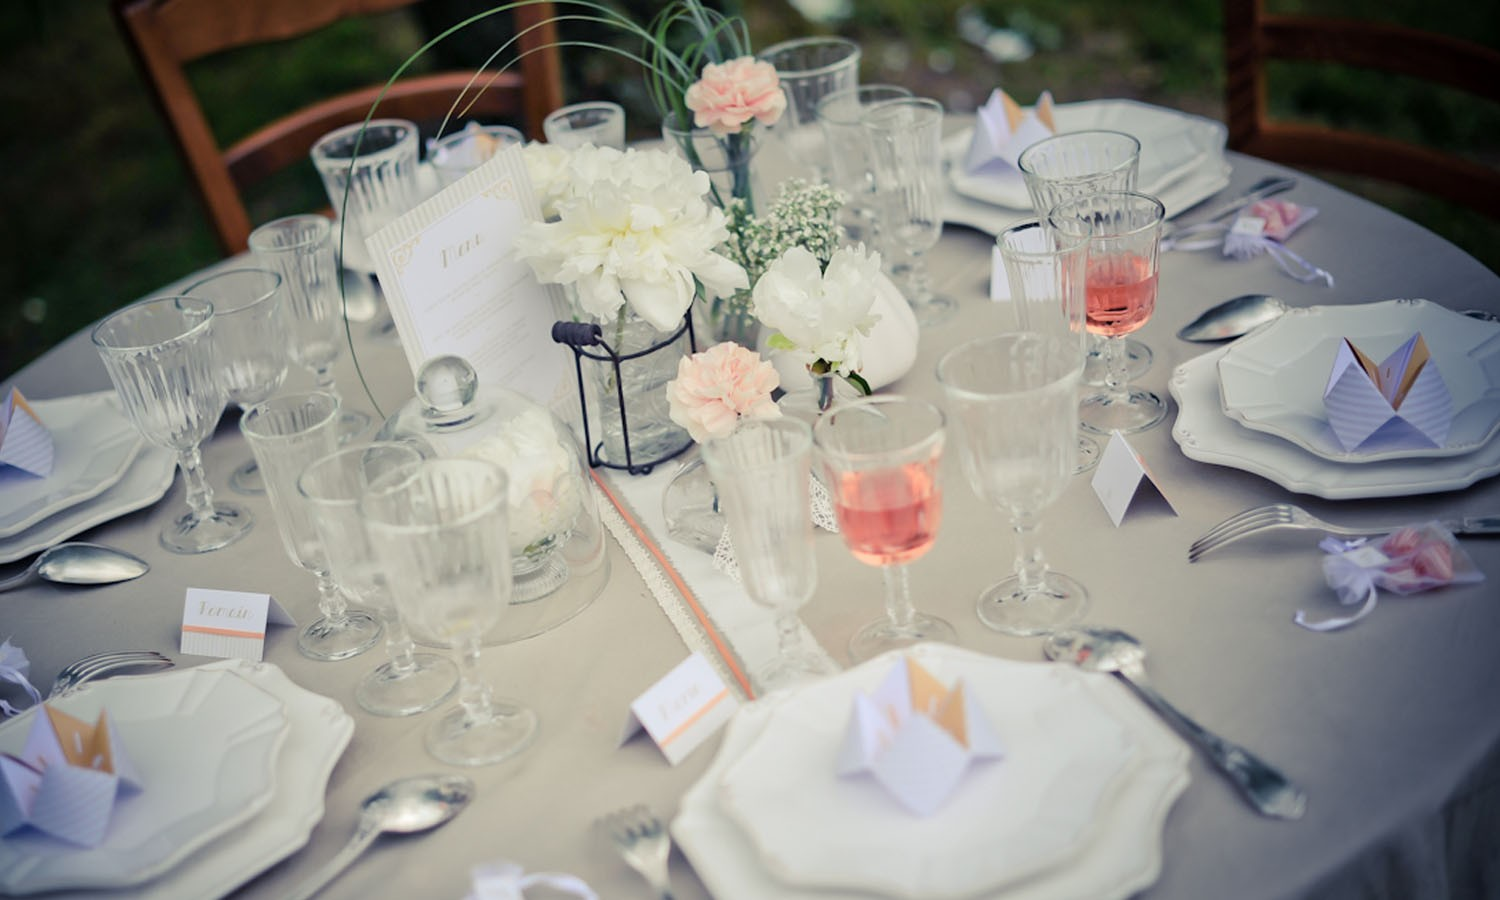 Personnes notables Shabby Chic - Helene Ripoll | Bijoux & Papeterie de Mariage MW86